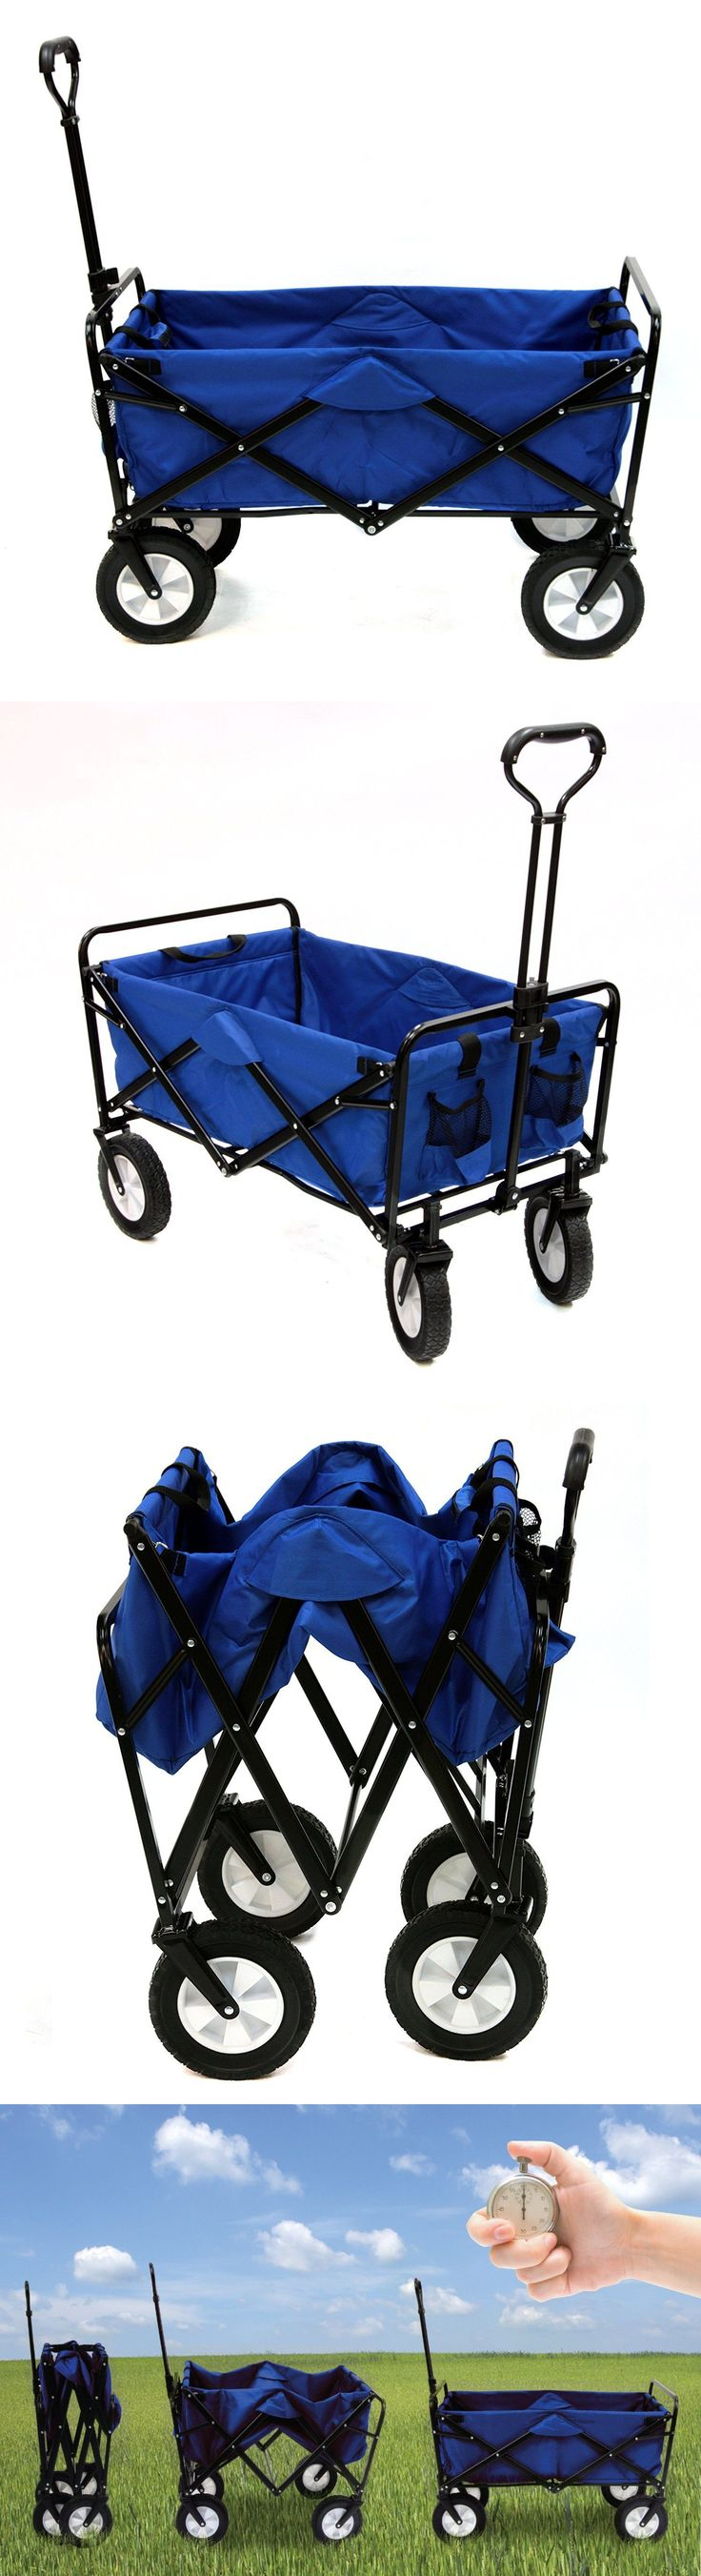 The 25 best ideas about beach cart on pinterest beach for Folding fishing cart